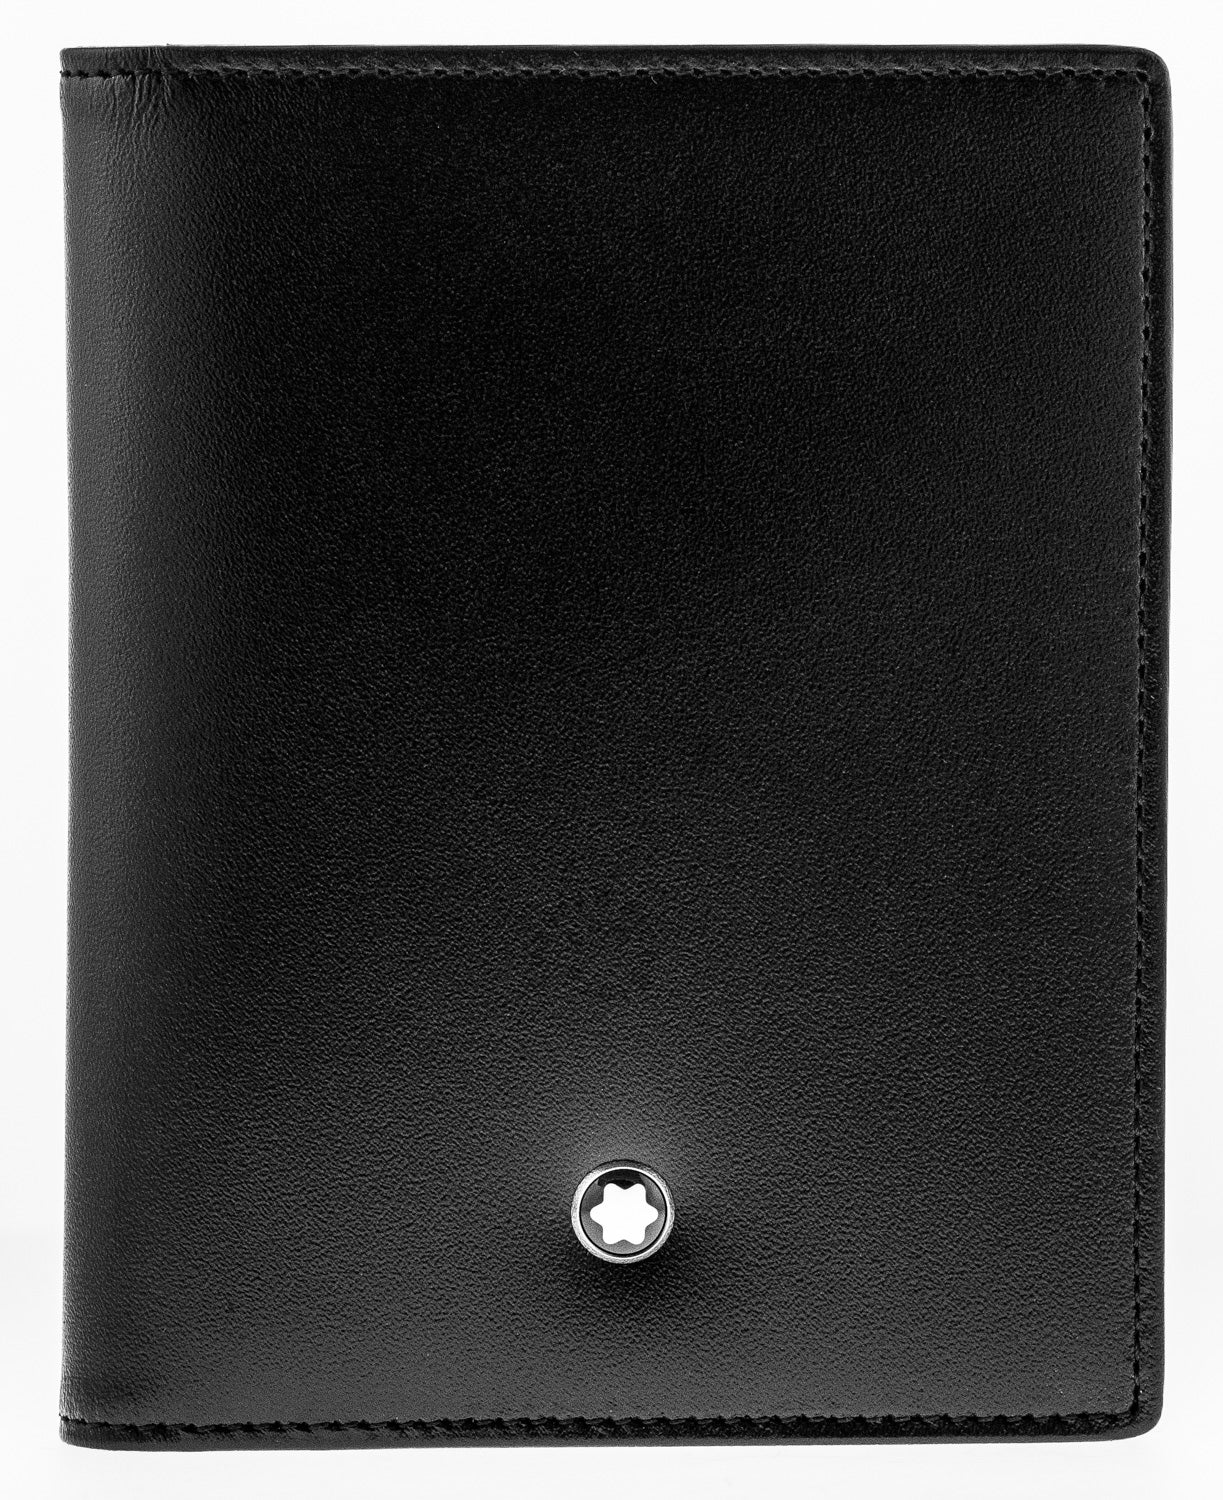 Montblanc 5527 Meisterstück Multi 12 Credit Card Case Leather